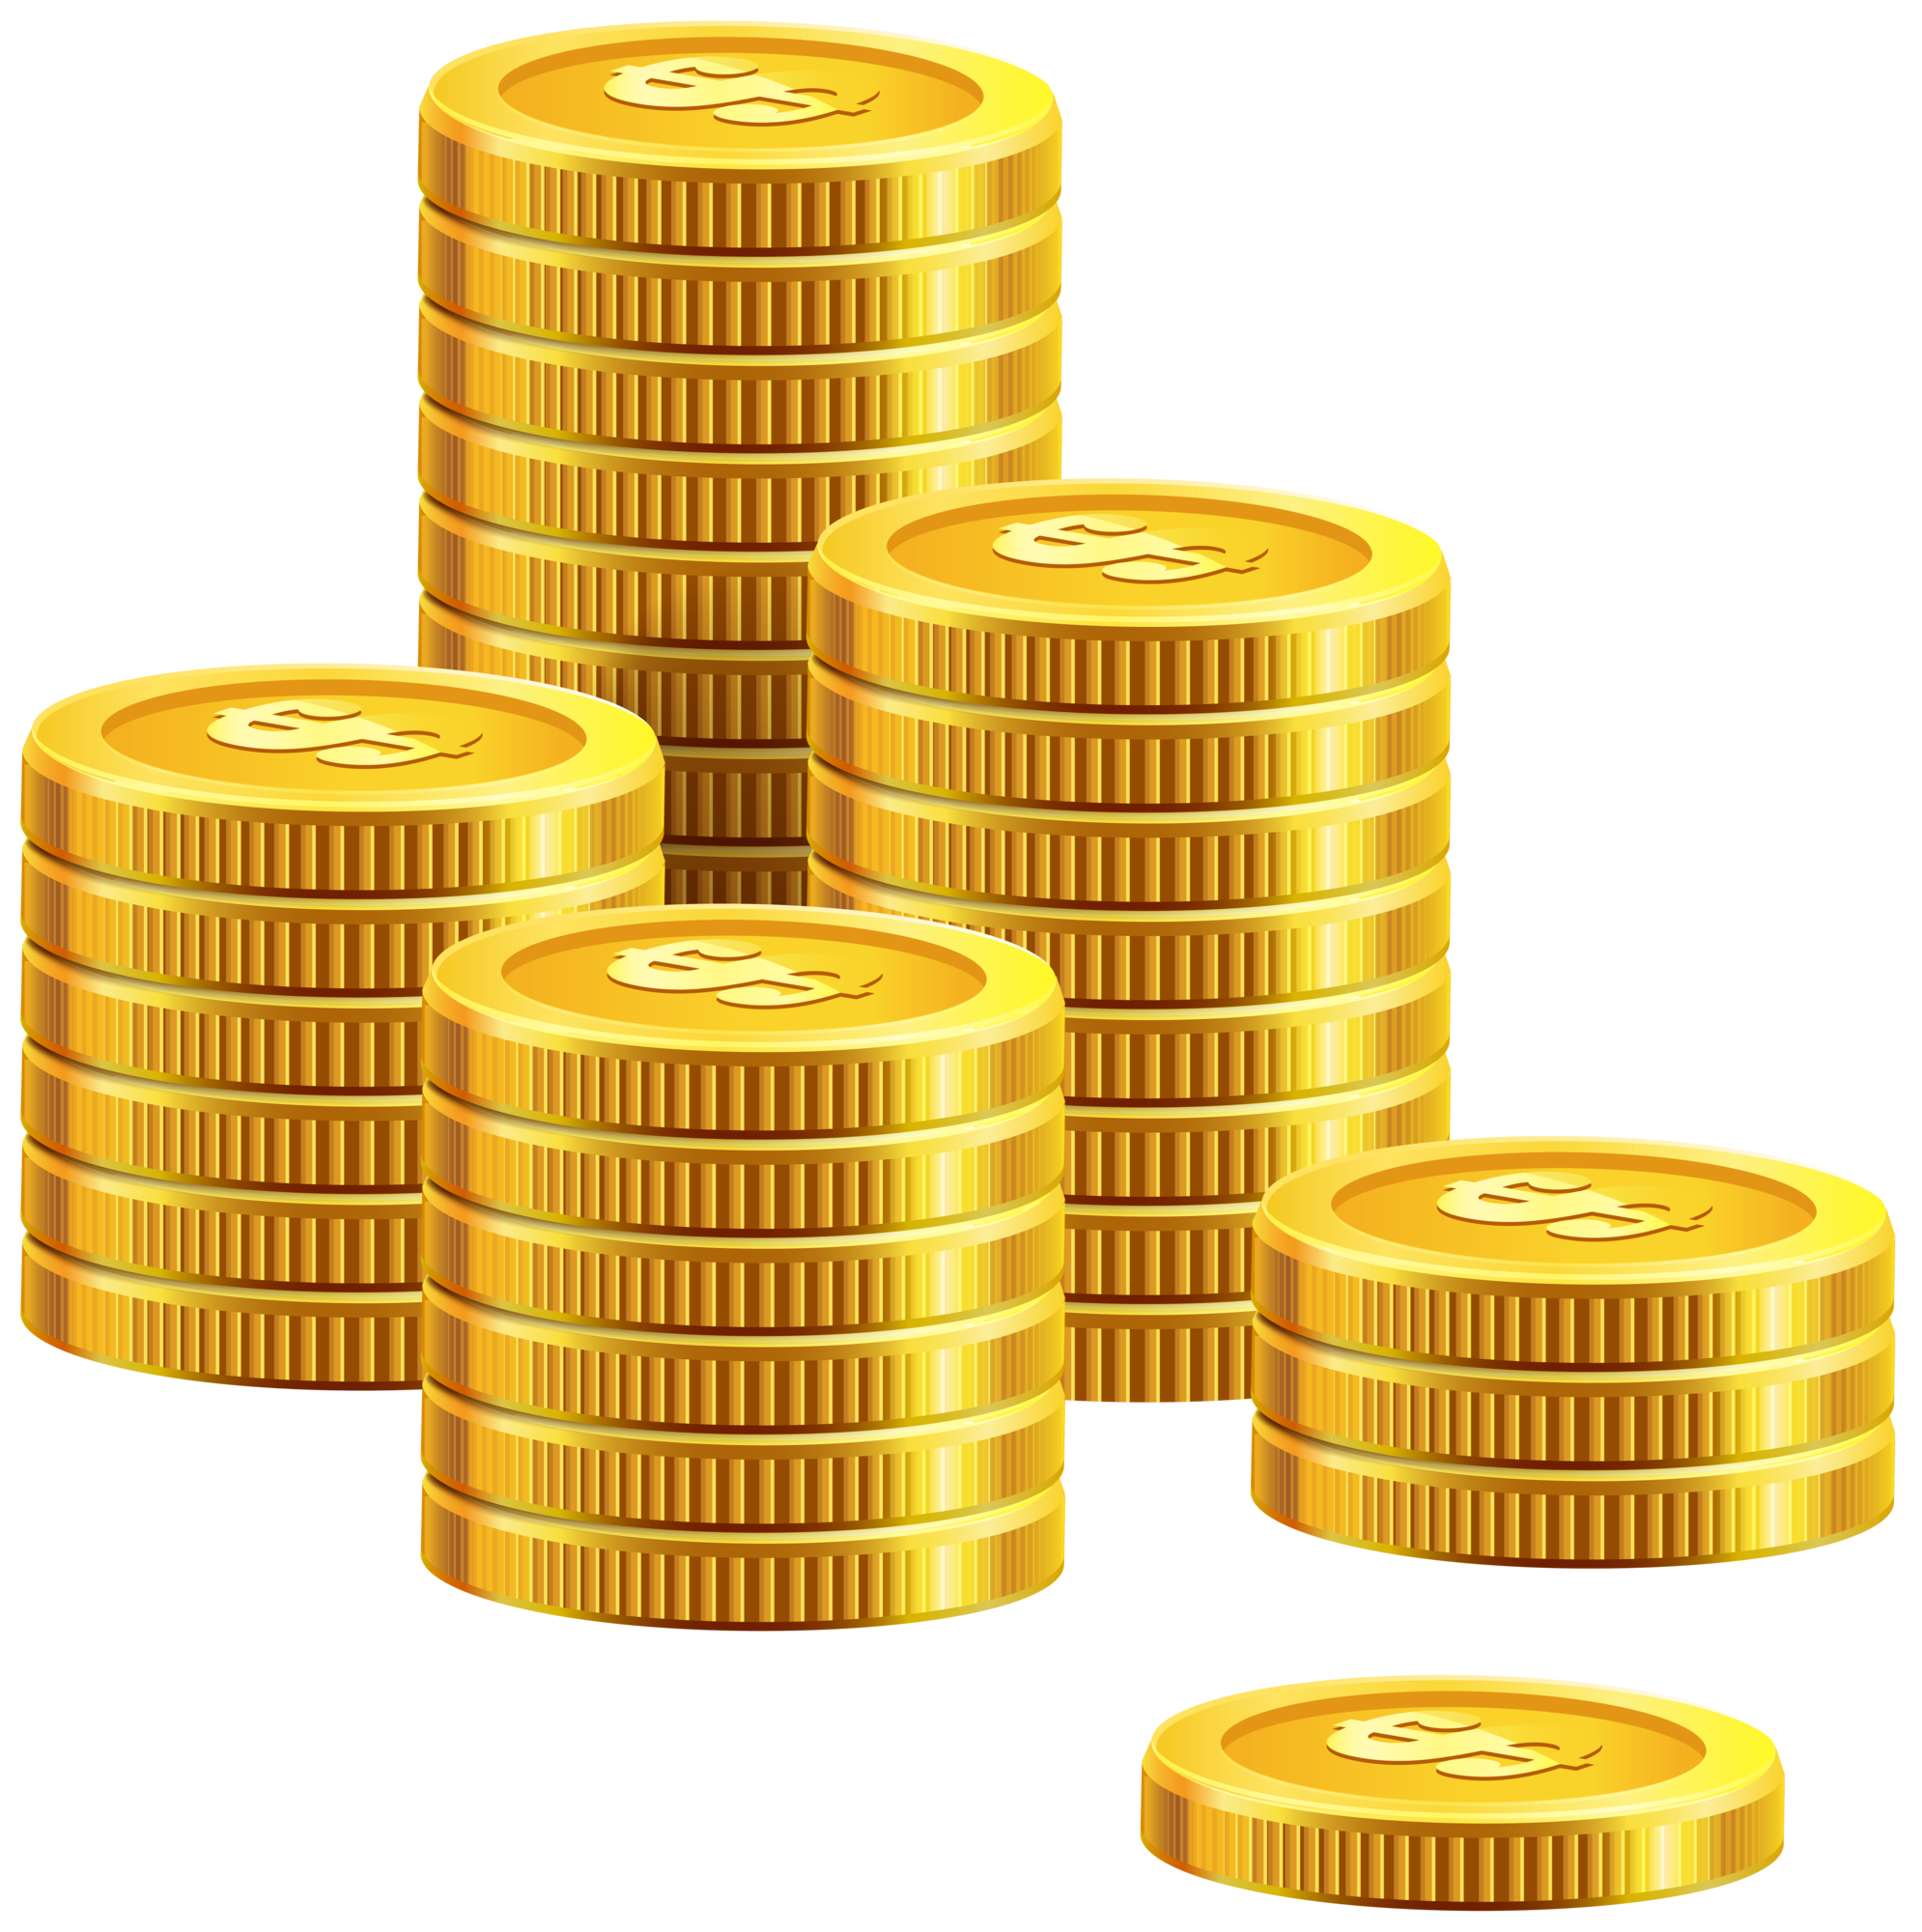 Coins clipart. Pile of png clip